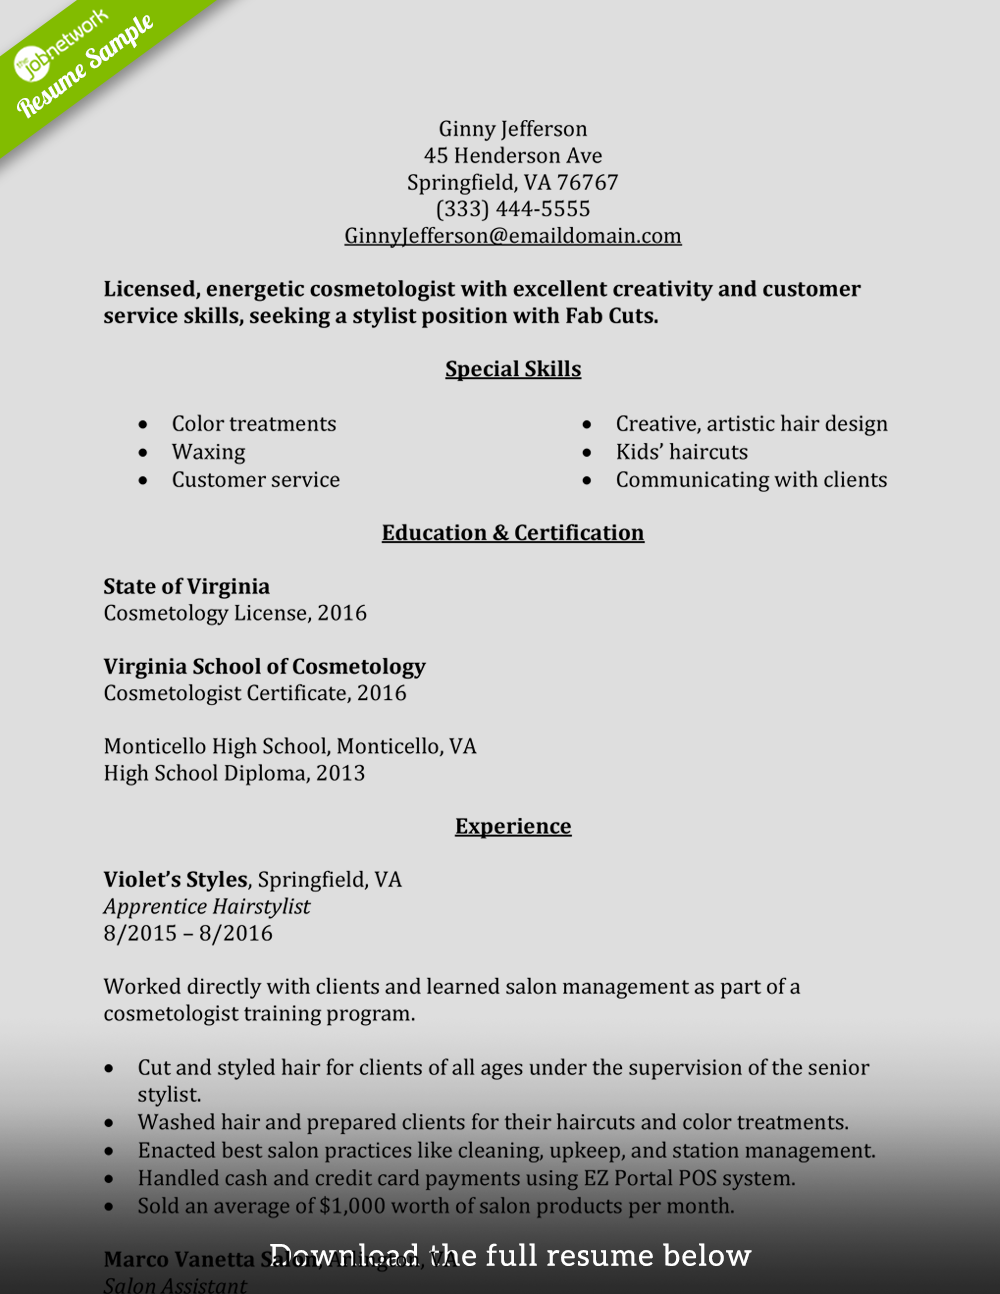 Superieur Cosmetologist Resume Entry Level